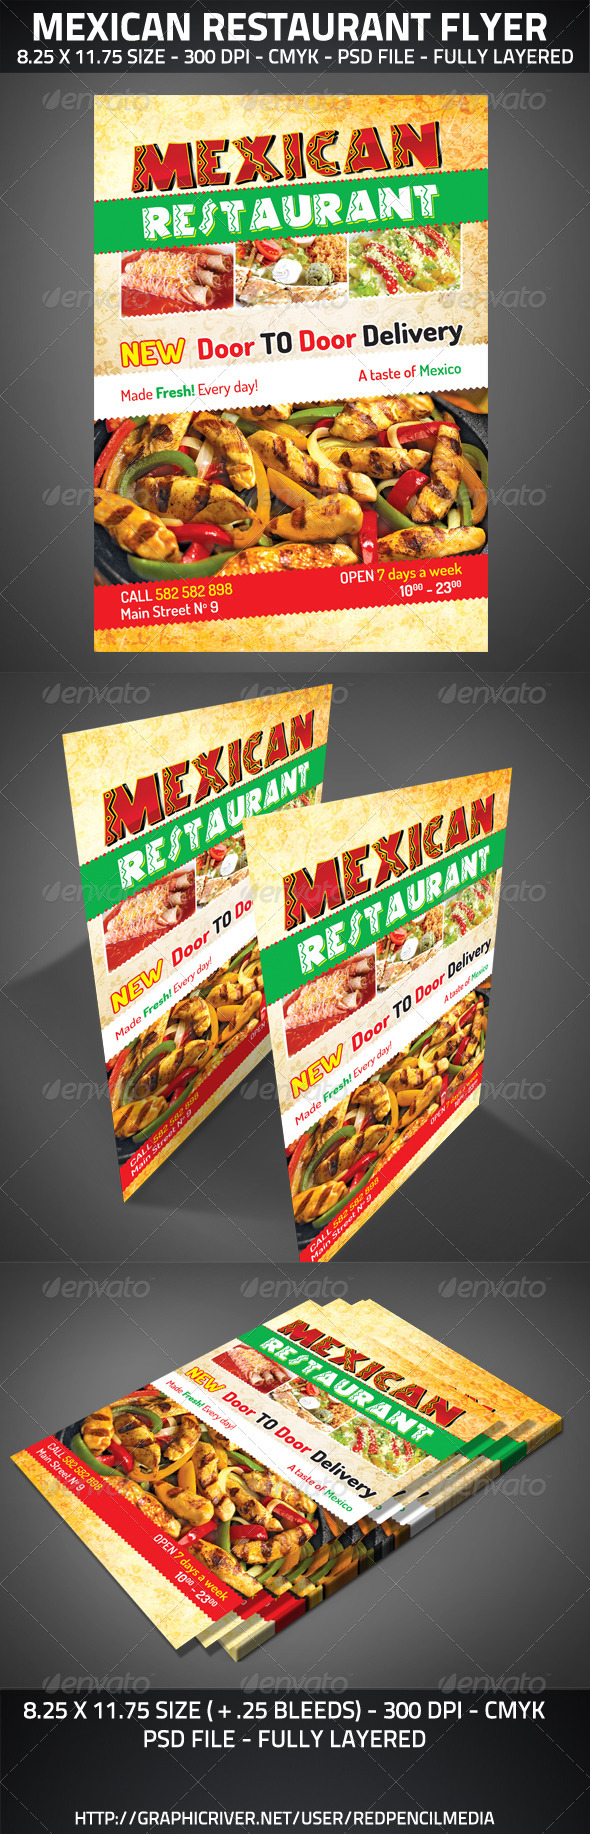 Mexican Restaurant Flyer - Restaurant Flyers